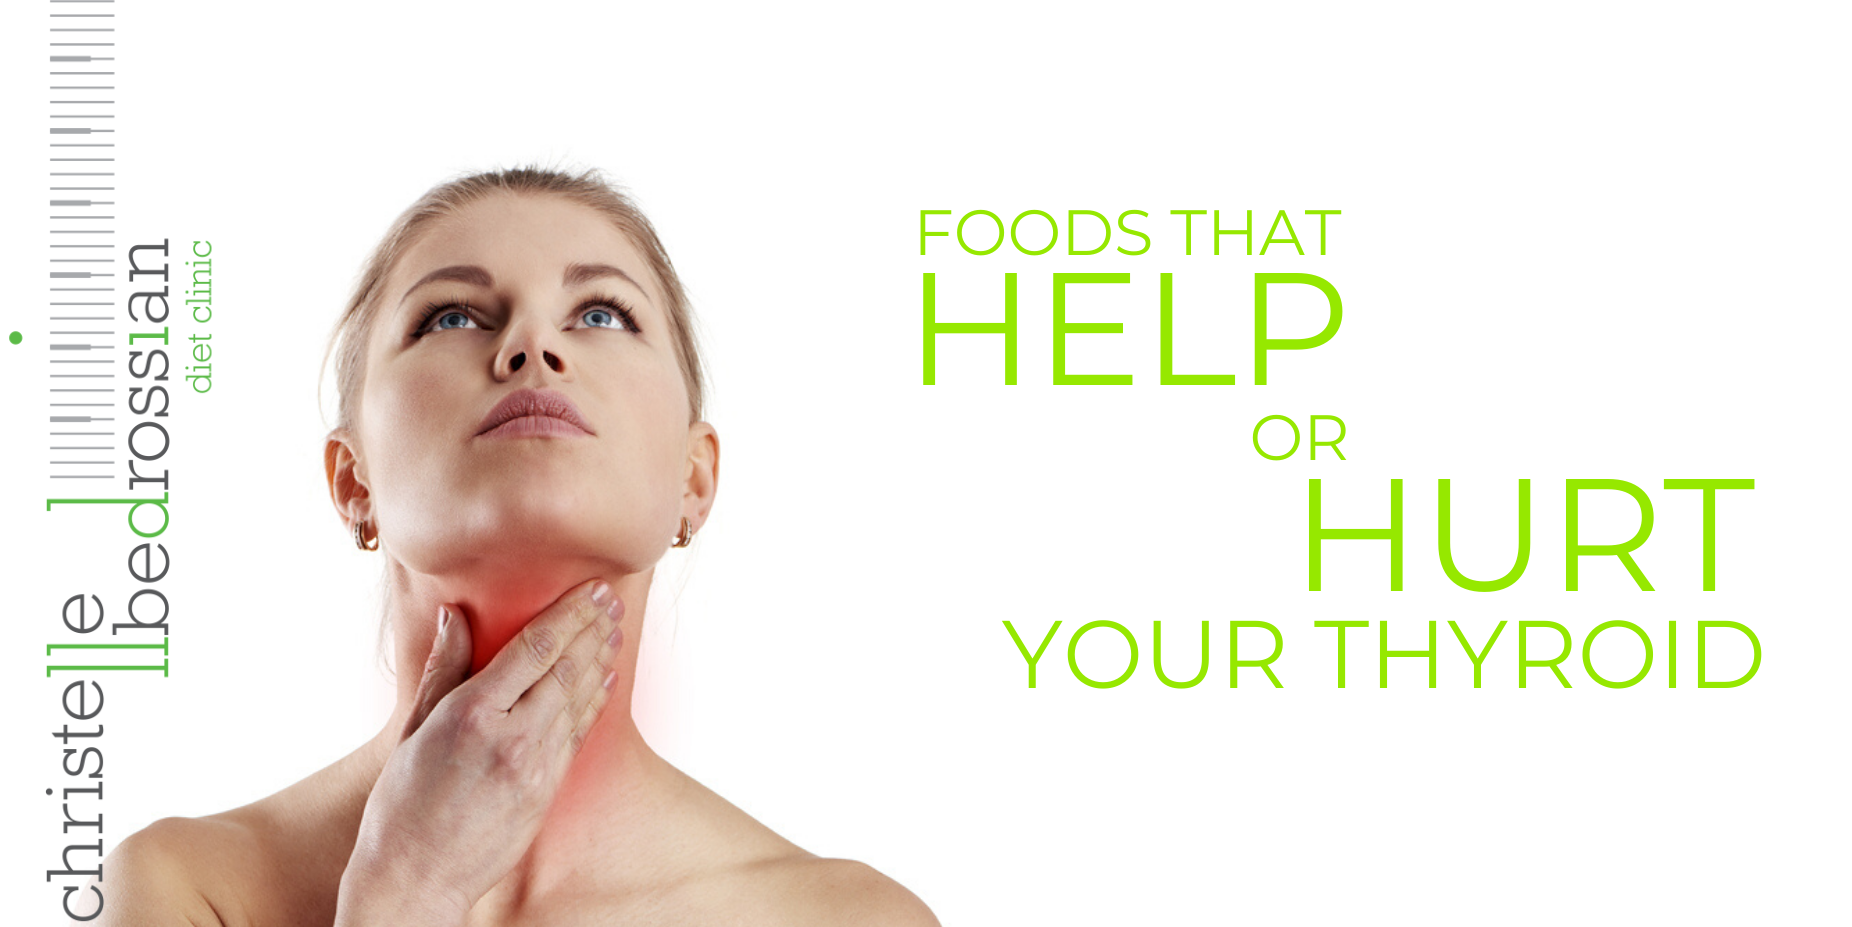 Foods that help or hurt your thyroid